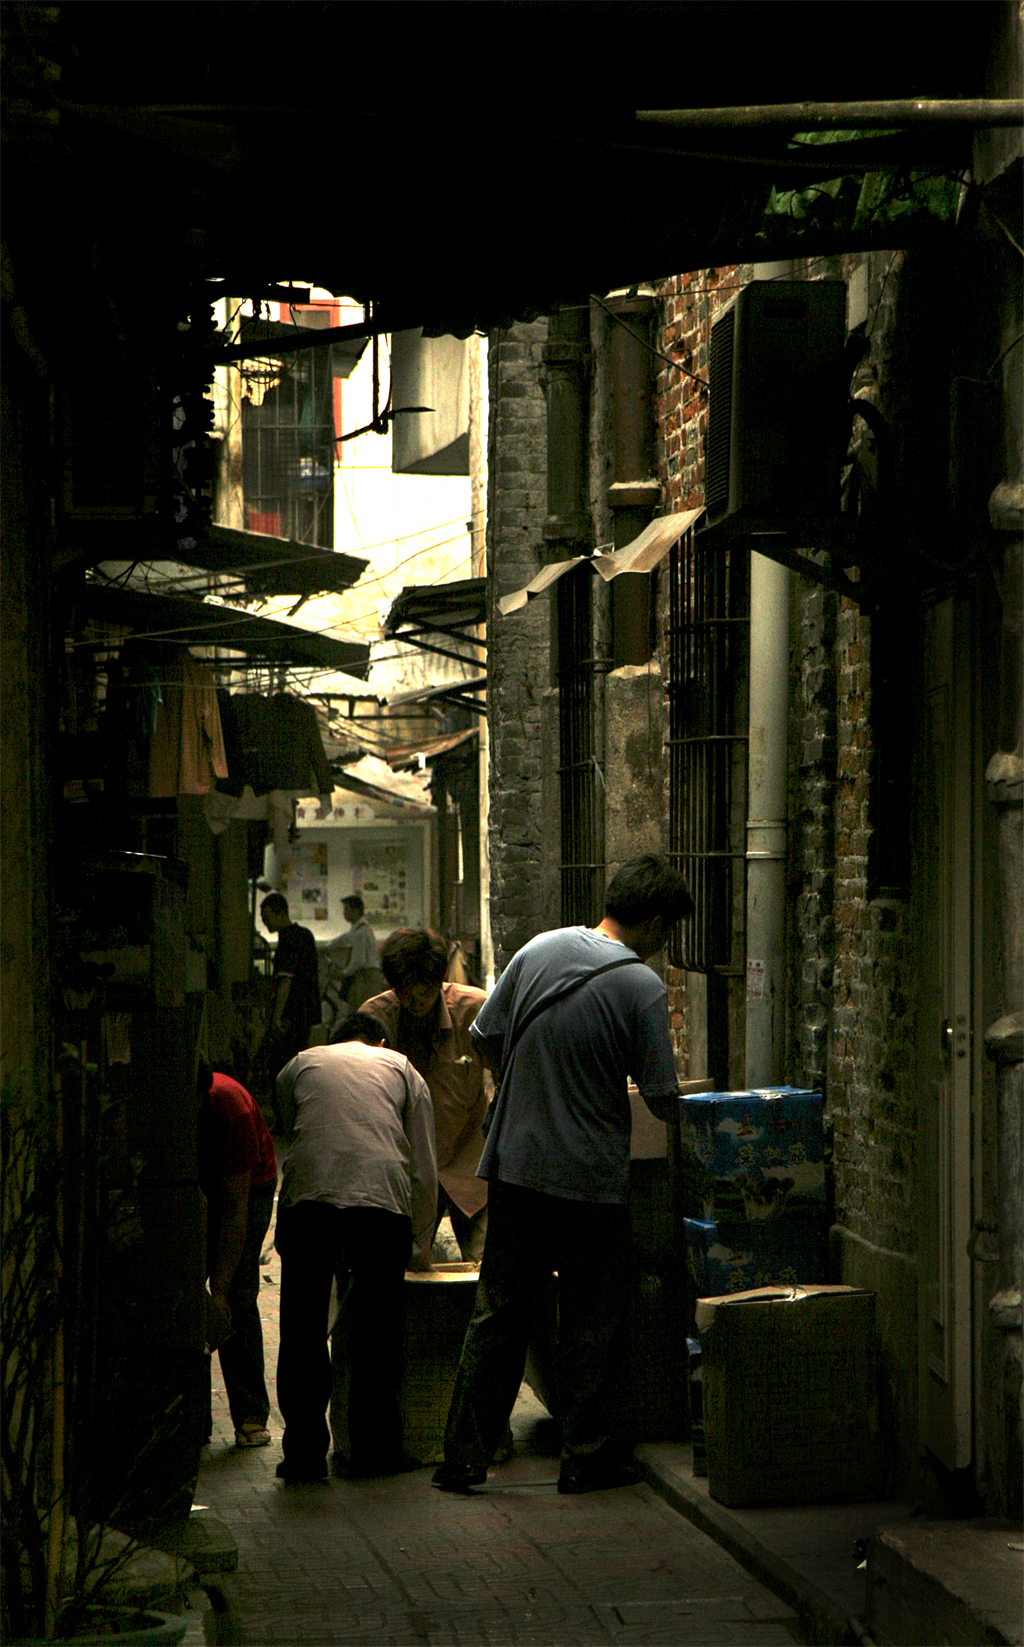 guangzhou alley author chepikian paul